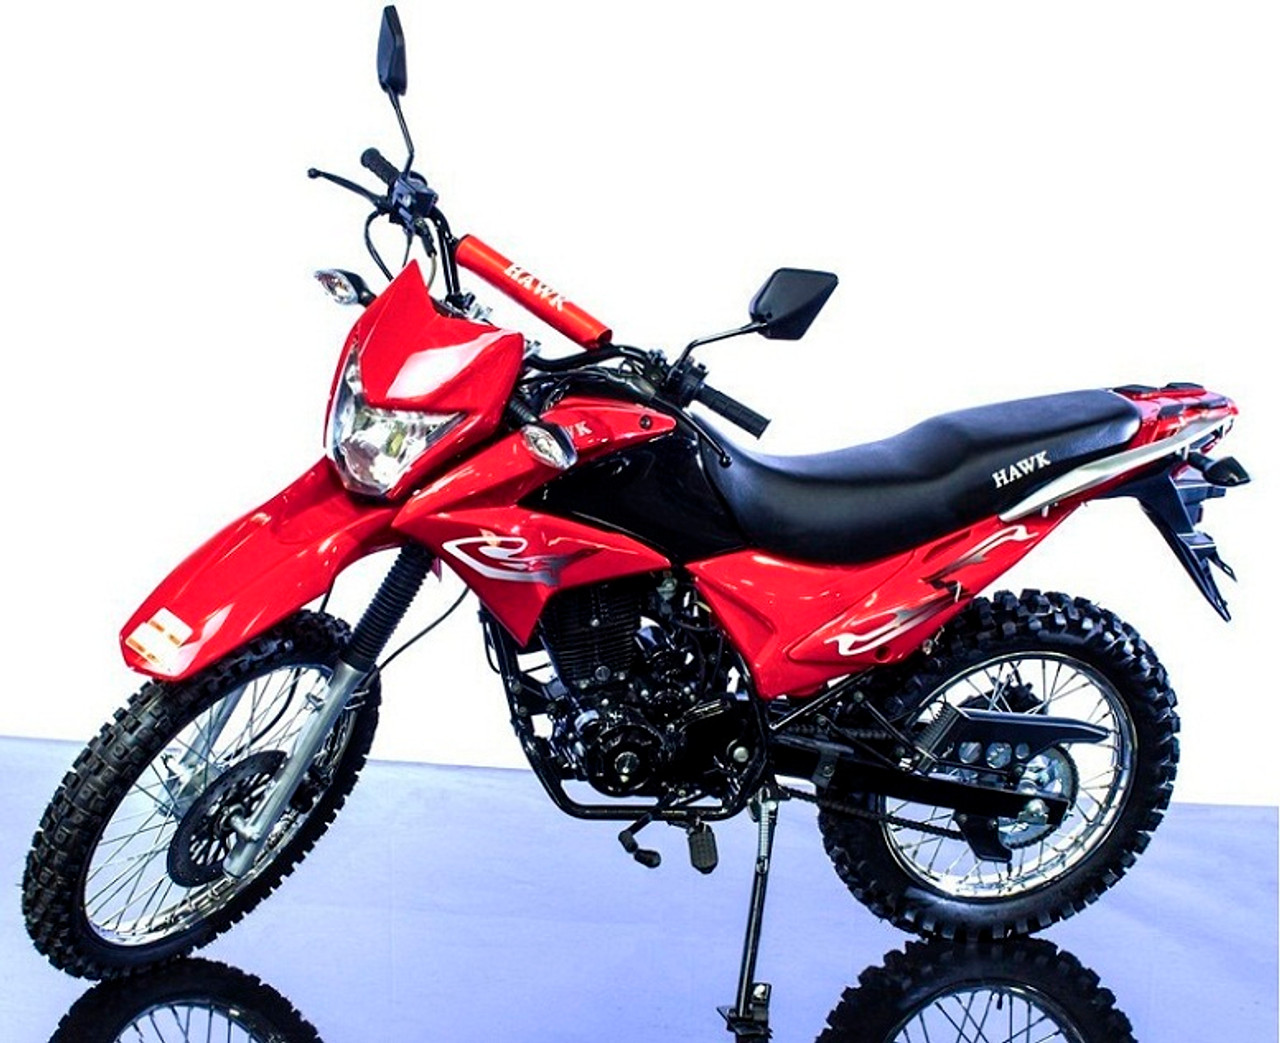 New Hawk 250cc Dirt Bike Dual Sports Enduro Street Legal With Bluetooth Speaker and Phone Holder